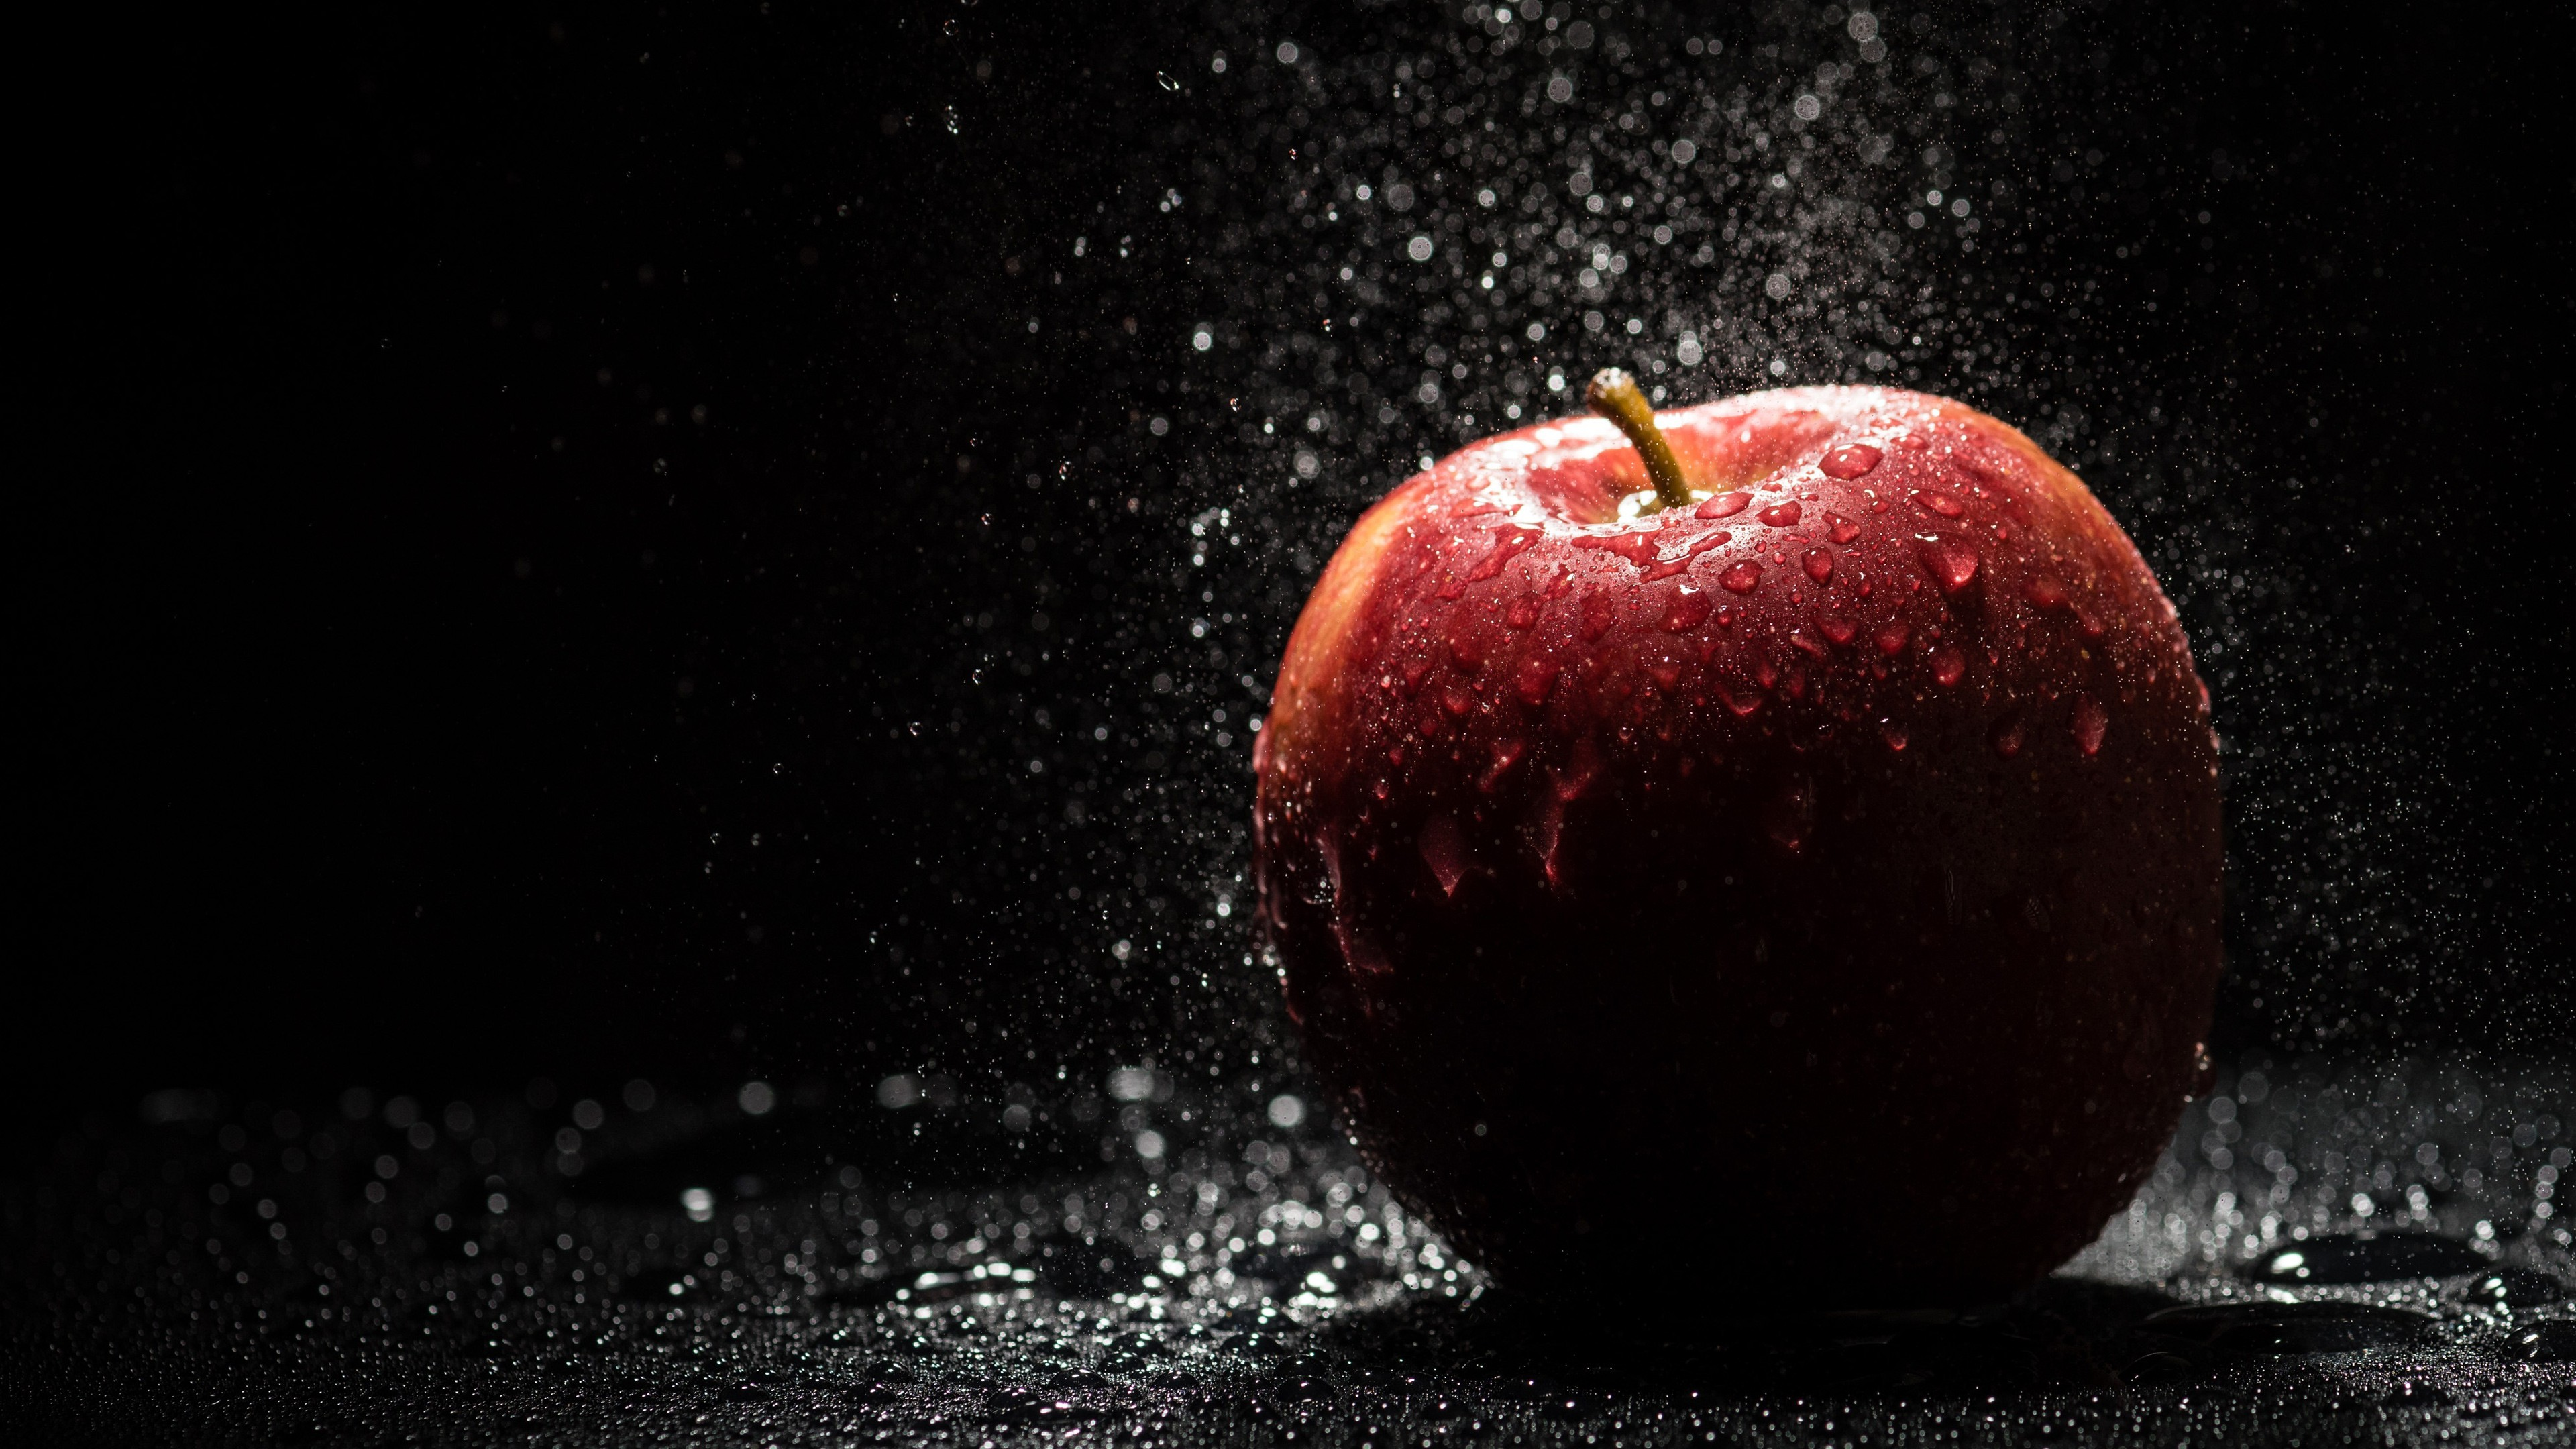 Water Drops On Apple Wallpaper